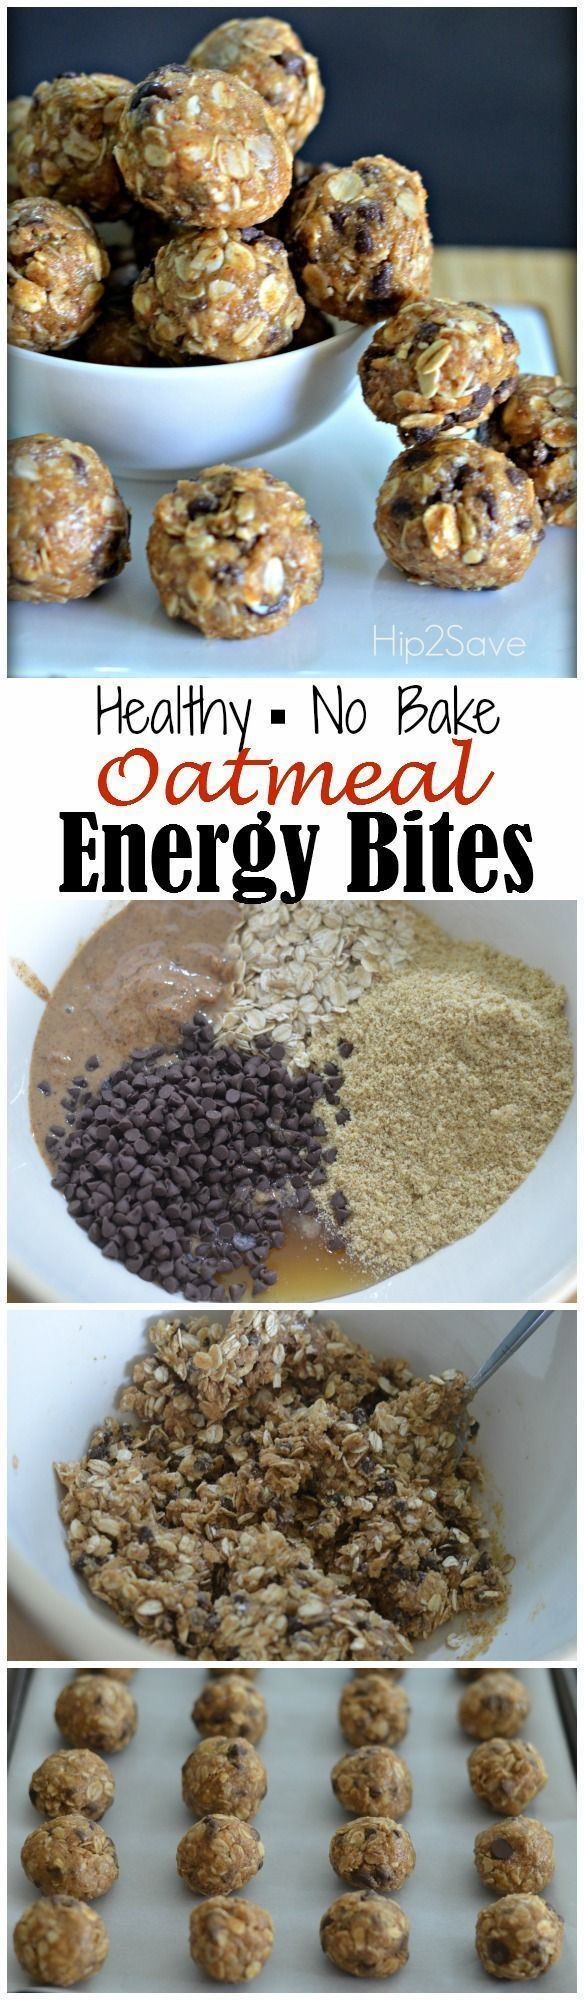 Energy Bites (Easy No-Bake Snack) Oatmeal Energy Bites that is great when you're on the road or your kids need a healthy snack. ( An Easy No-Bake Snack). For more recipes, craft ideas, and coupons you can visit Oatmeal Energy Bites that is great when you're on the road or your kids need a healthy snack. ( An Easy No-Bake Snack). For more recipes, craft ideas, and c...